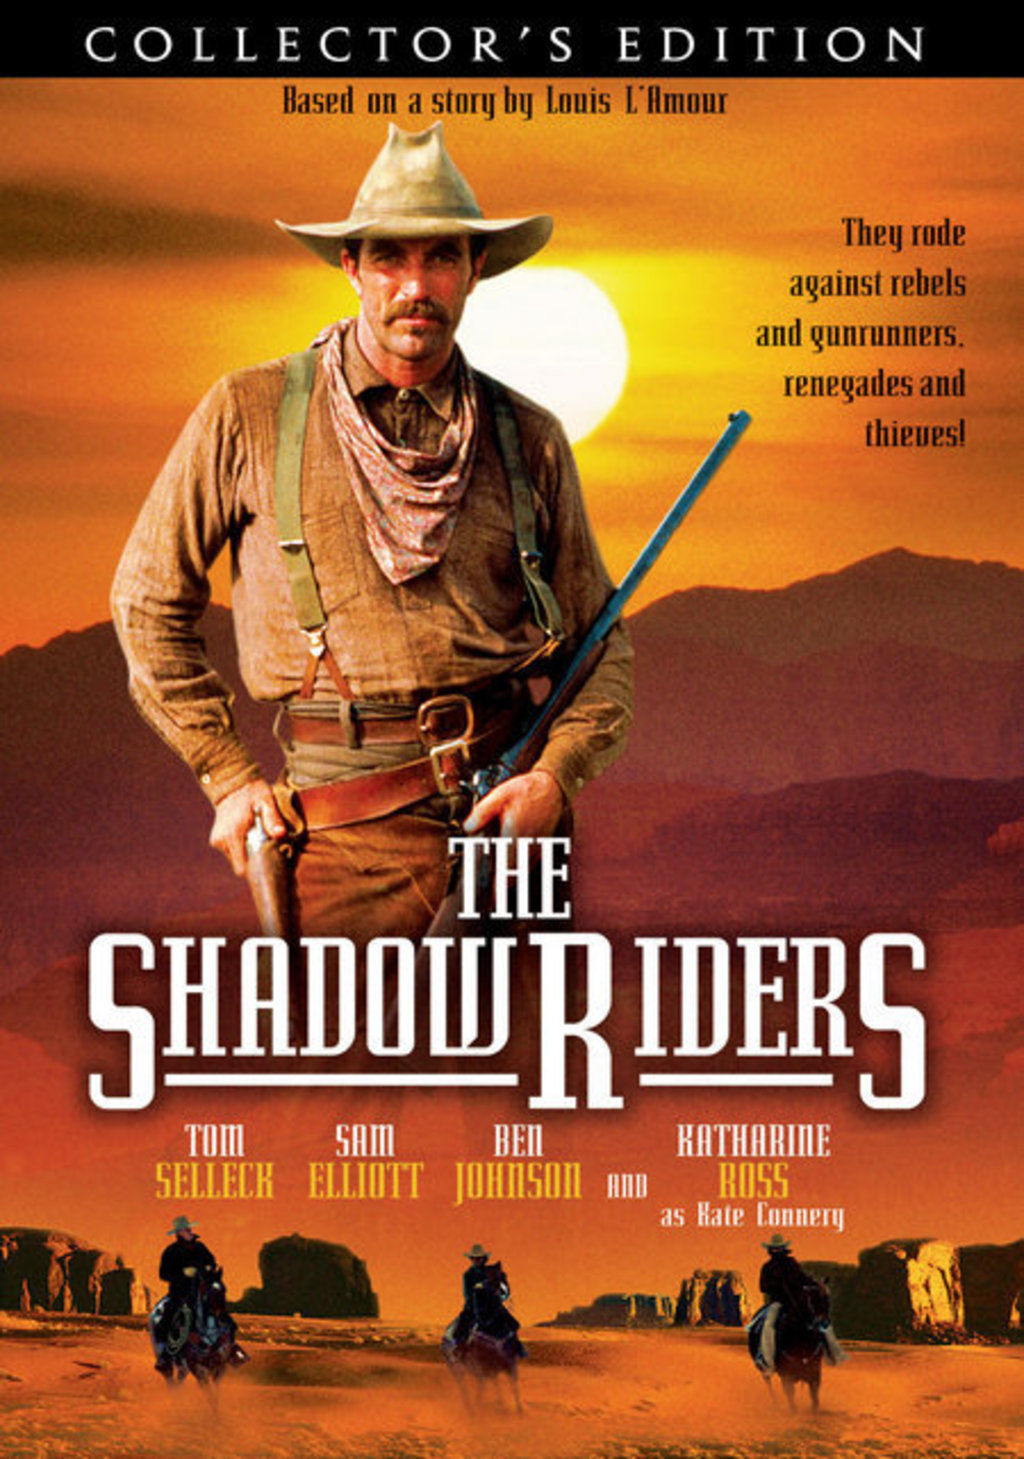 Watch The Shadow Riders on Netflix Today  NetflixMoviescom